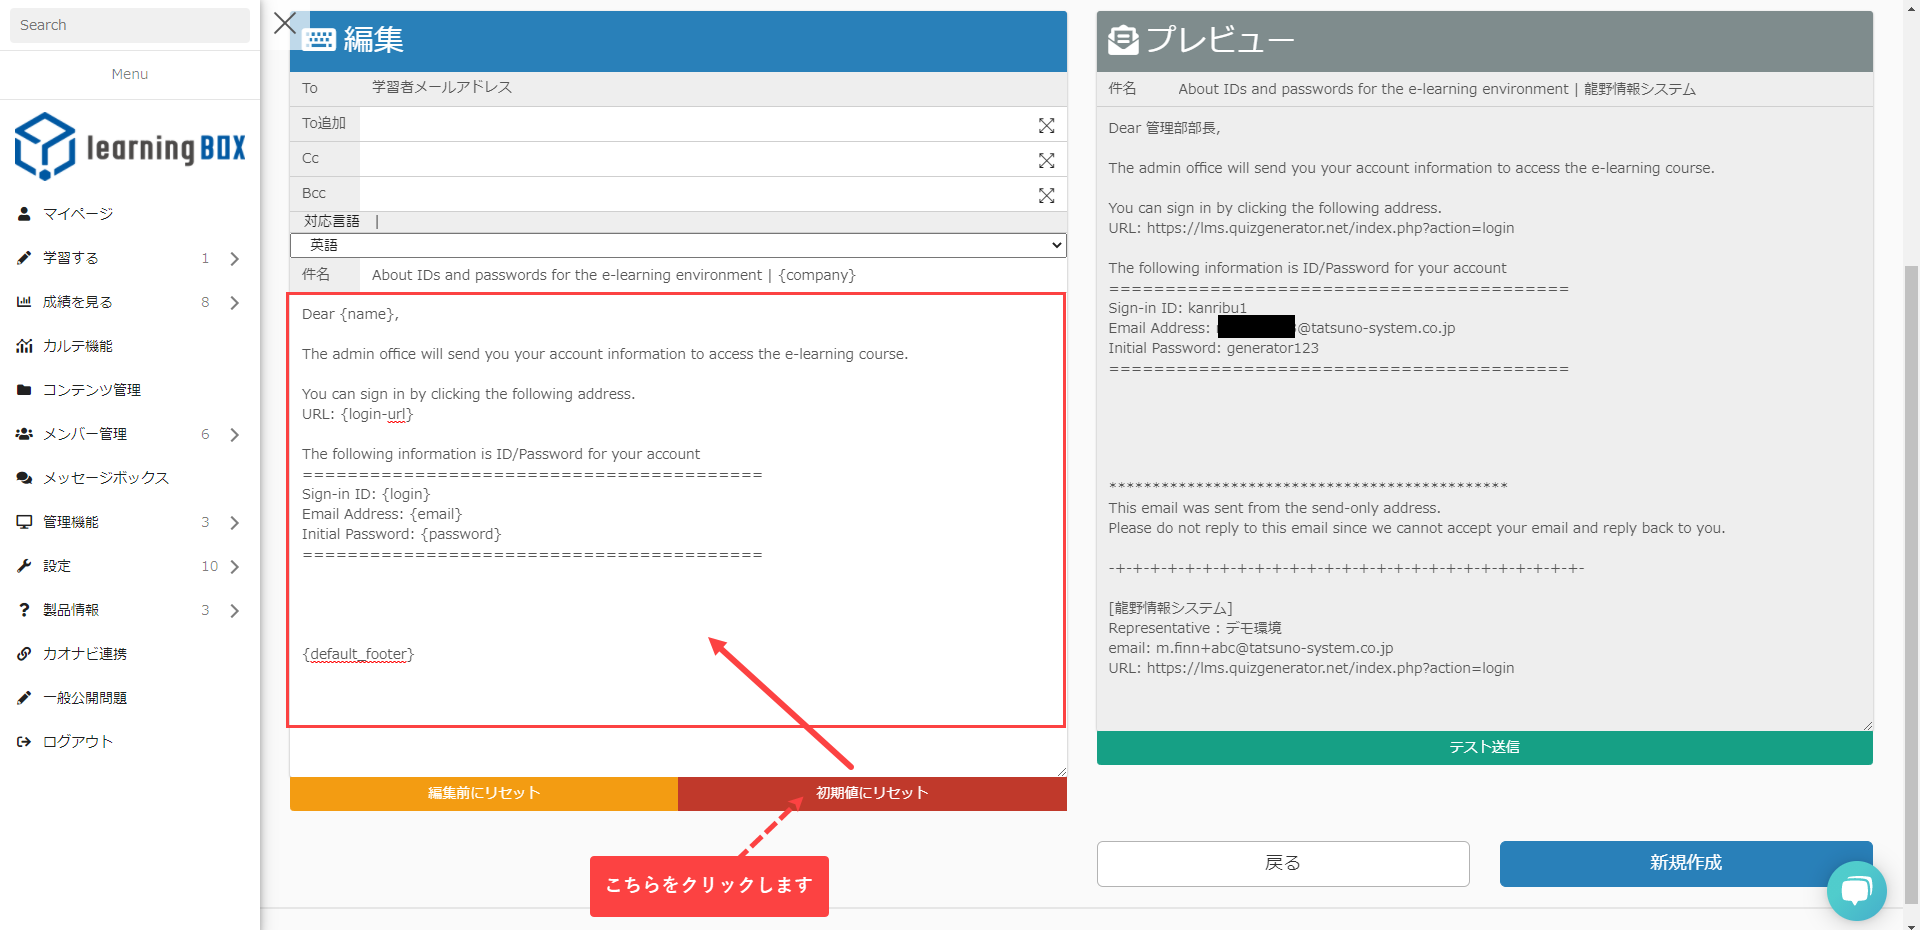 learningBOX - Email template settings